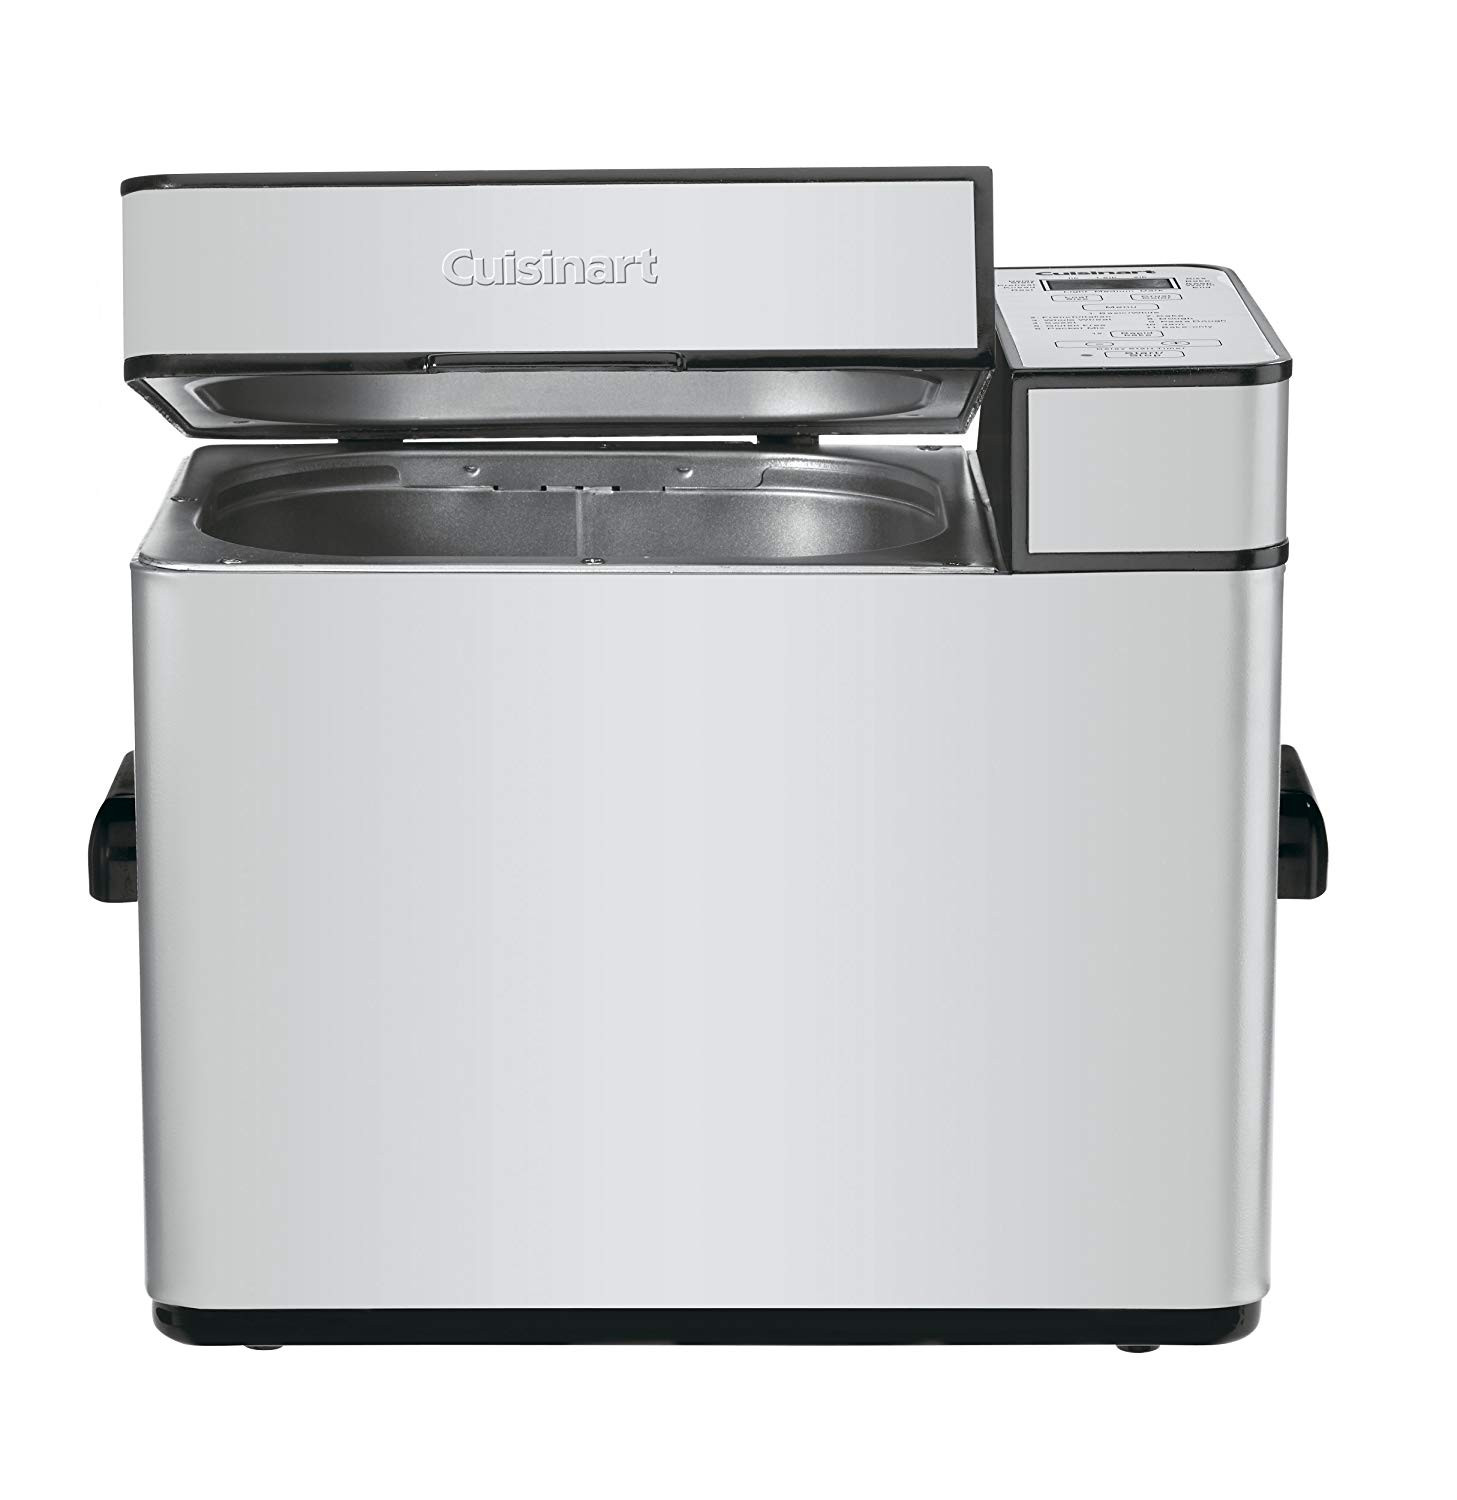 Cuisinart Bread Machine Recipes  New Cuisinart 2 Pound Programmable Breadmaker Stainless